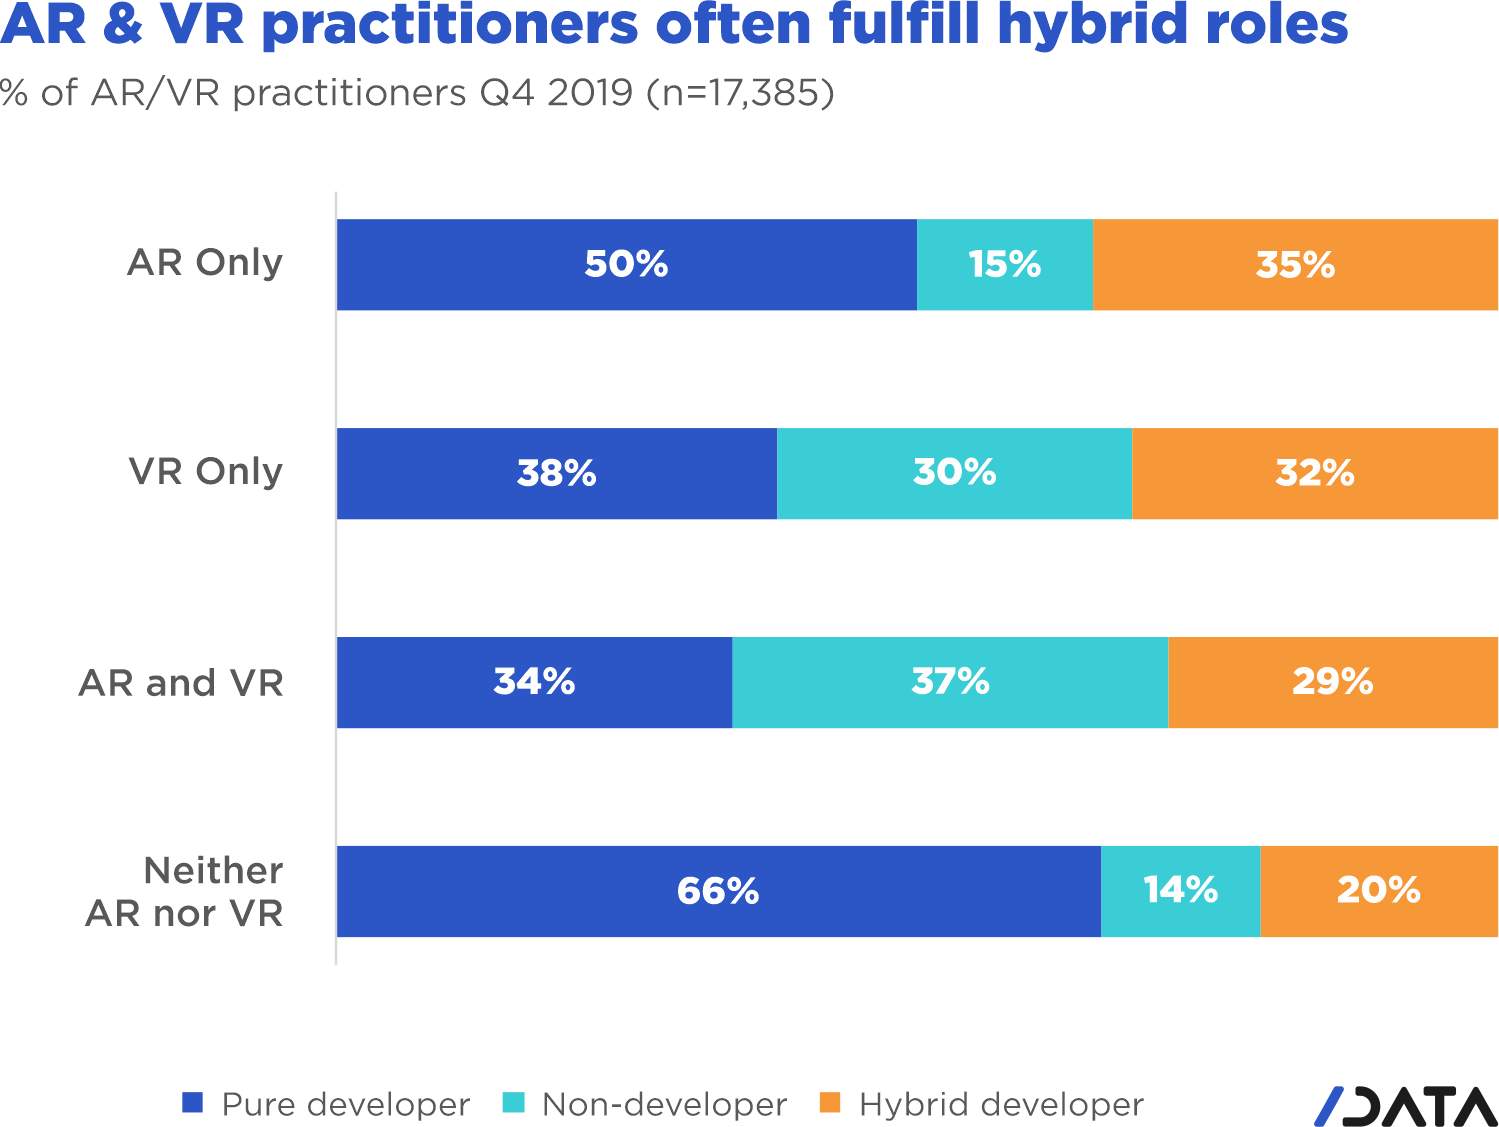 AR & VR practitioners often fulfill hybrid roles